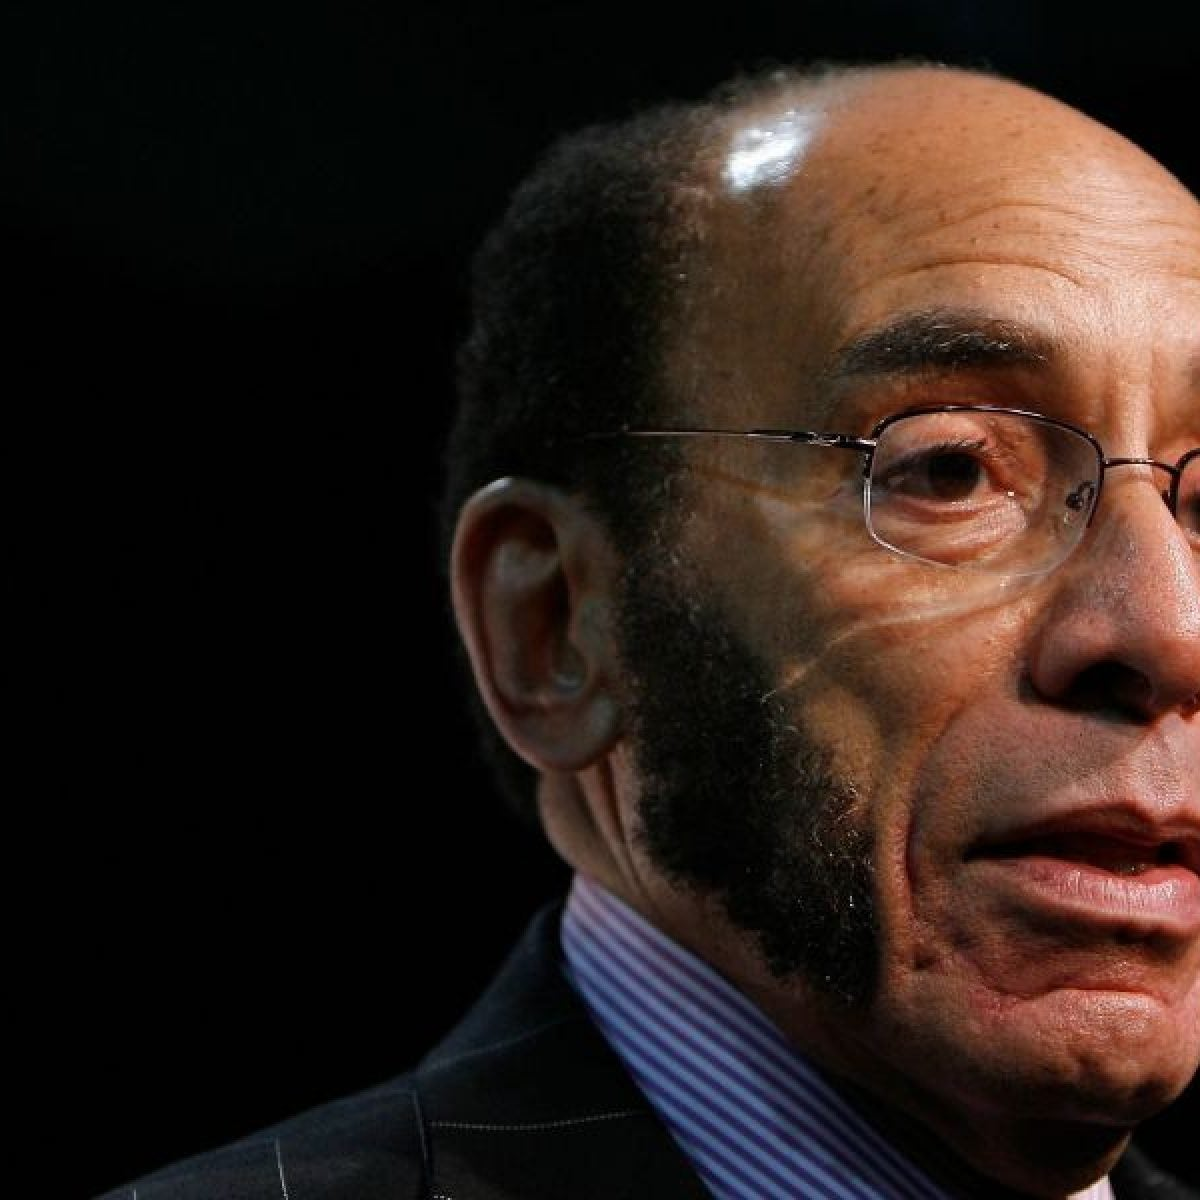 'Black Enterprise' Founder Earl Graves, Sr. Dead at 85